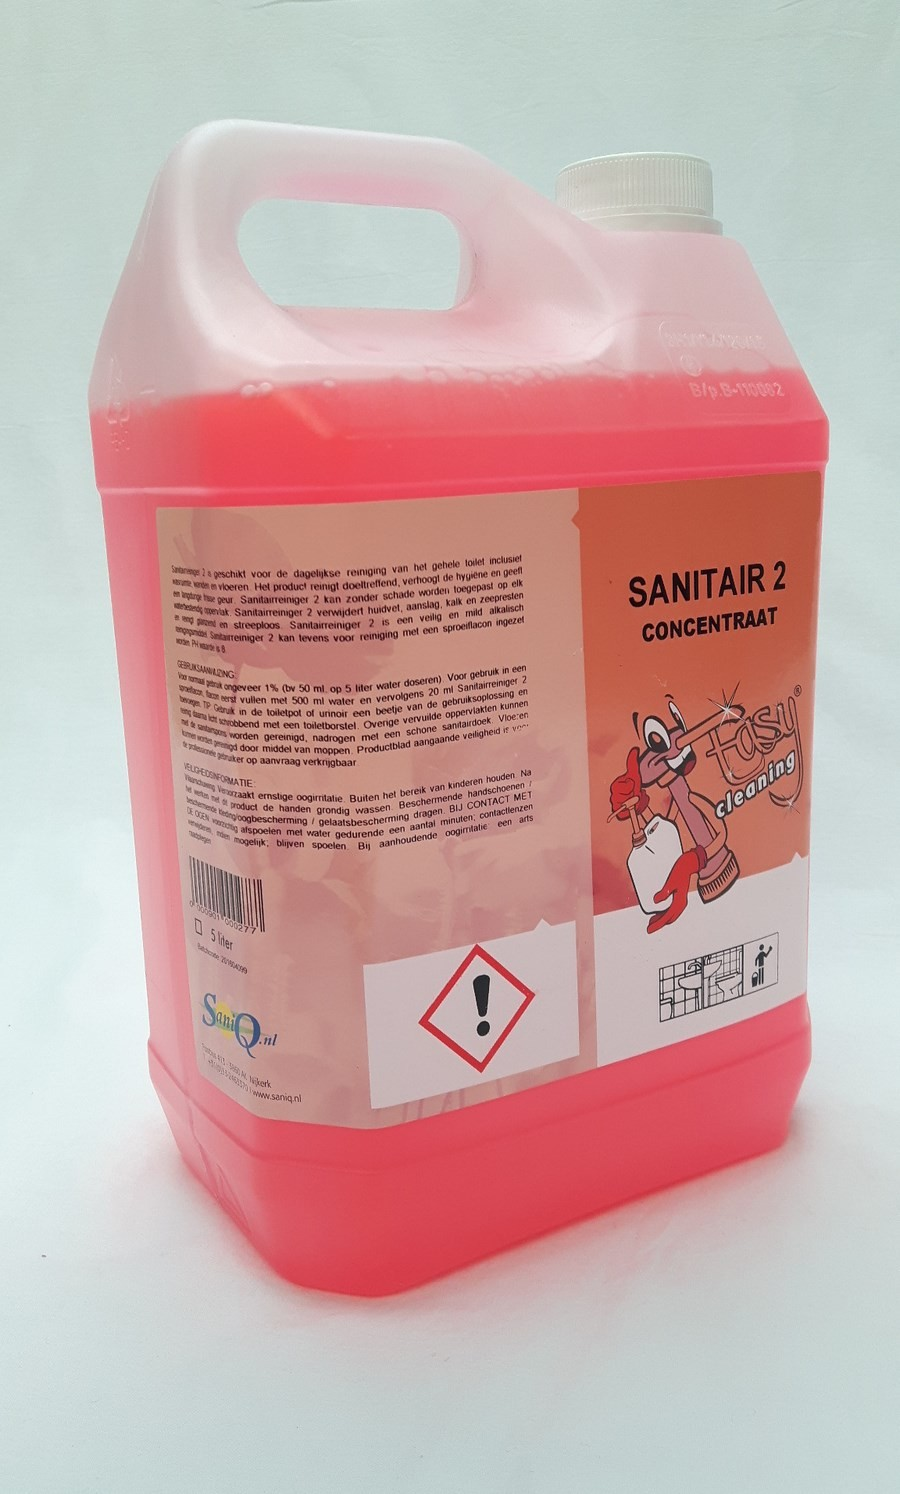 Easy Cleaning Nr. 2 Sanitair reiniger concentraat, 5 liter